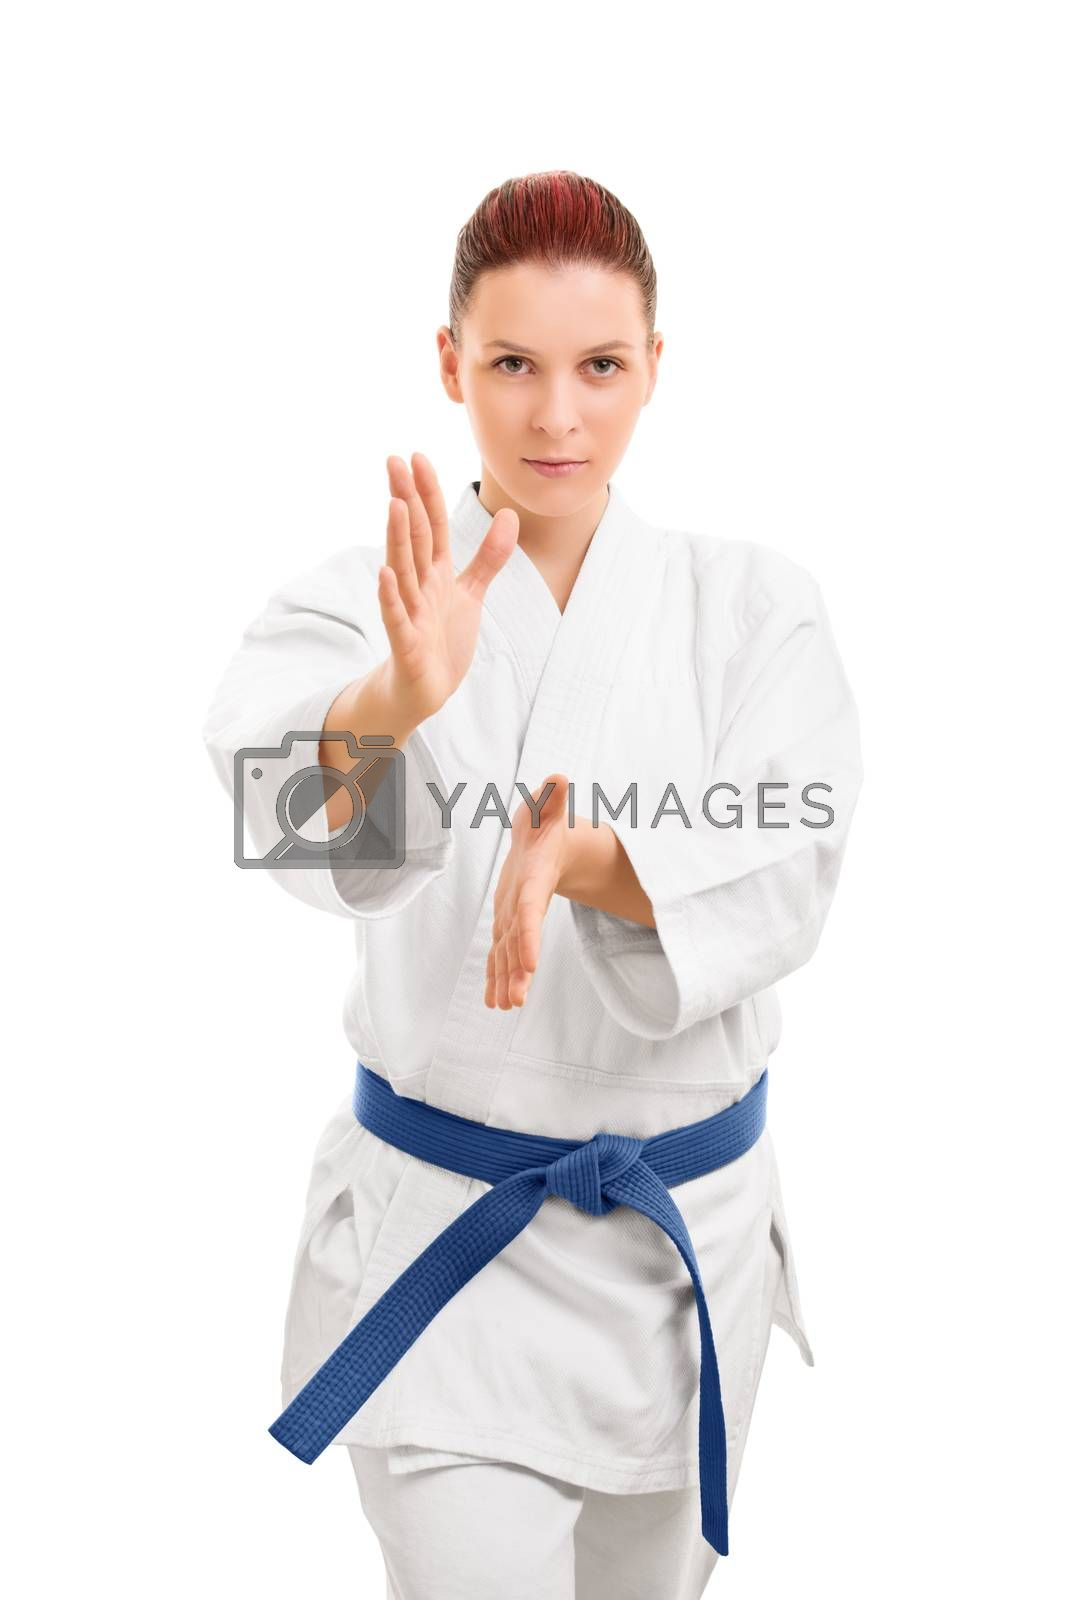 A portrait of a beautiful young girl in a kimono, standing in a combat stance, isolated on white background.